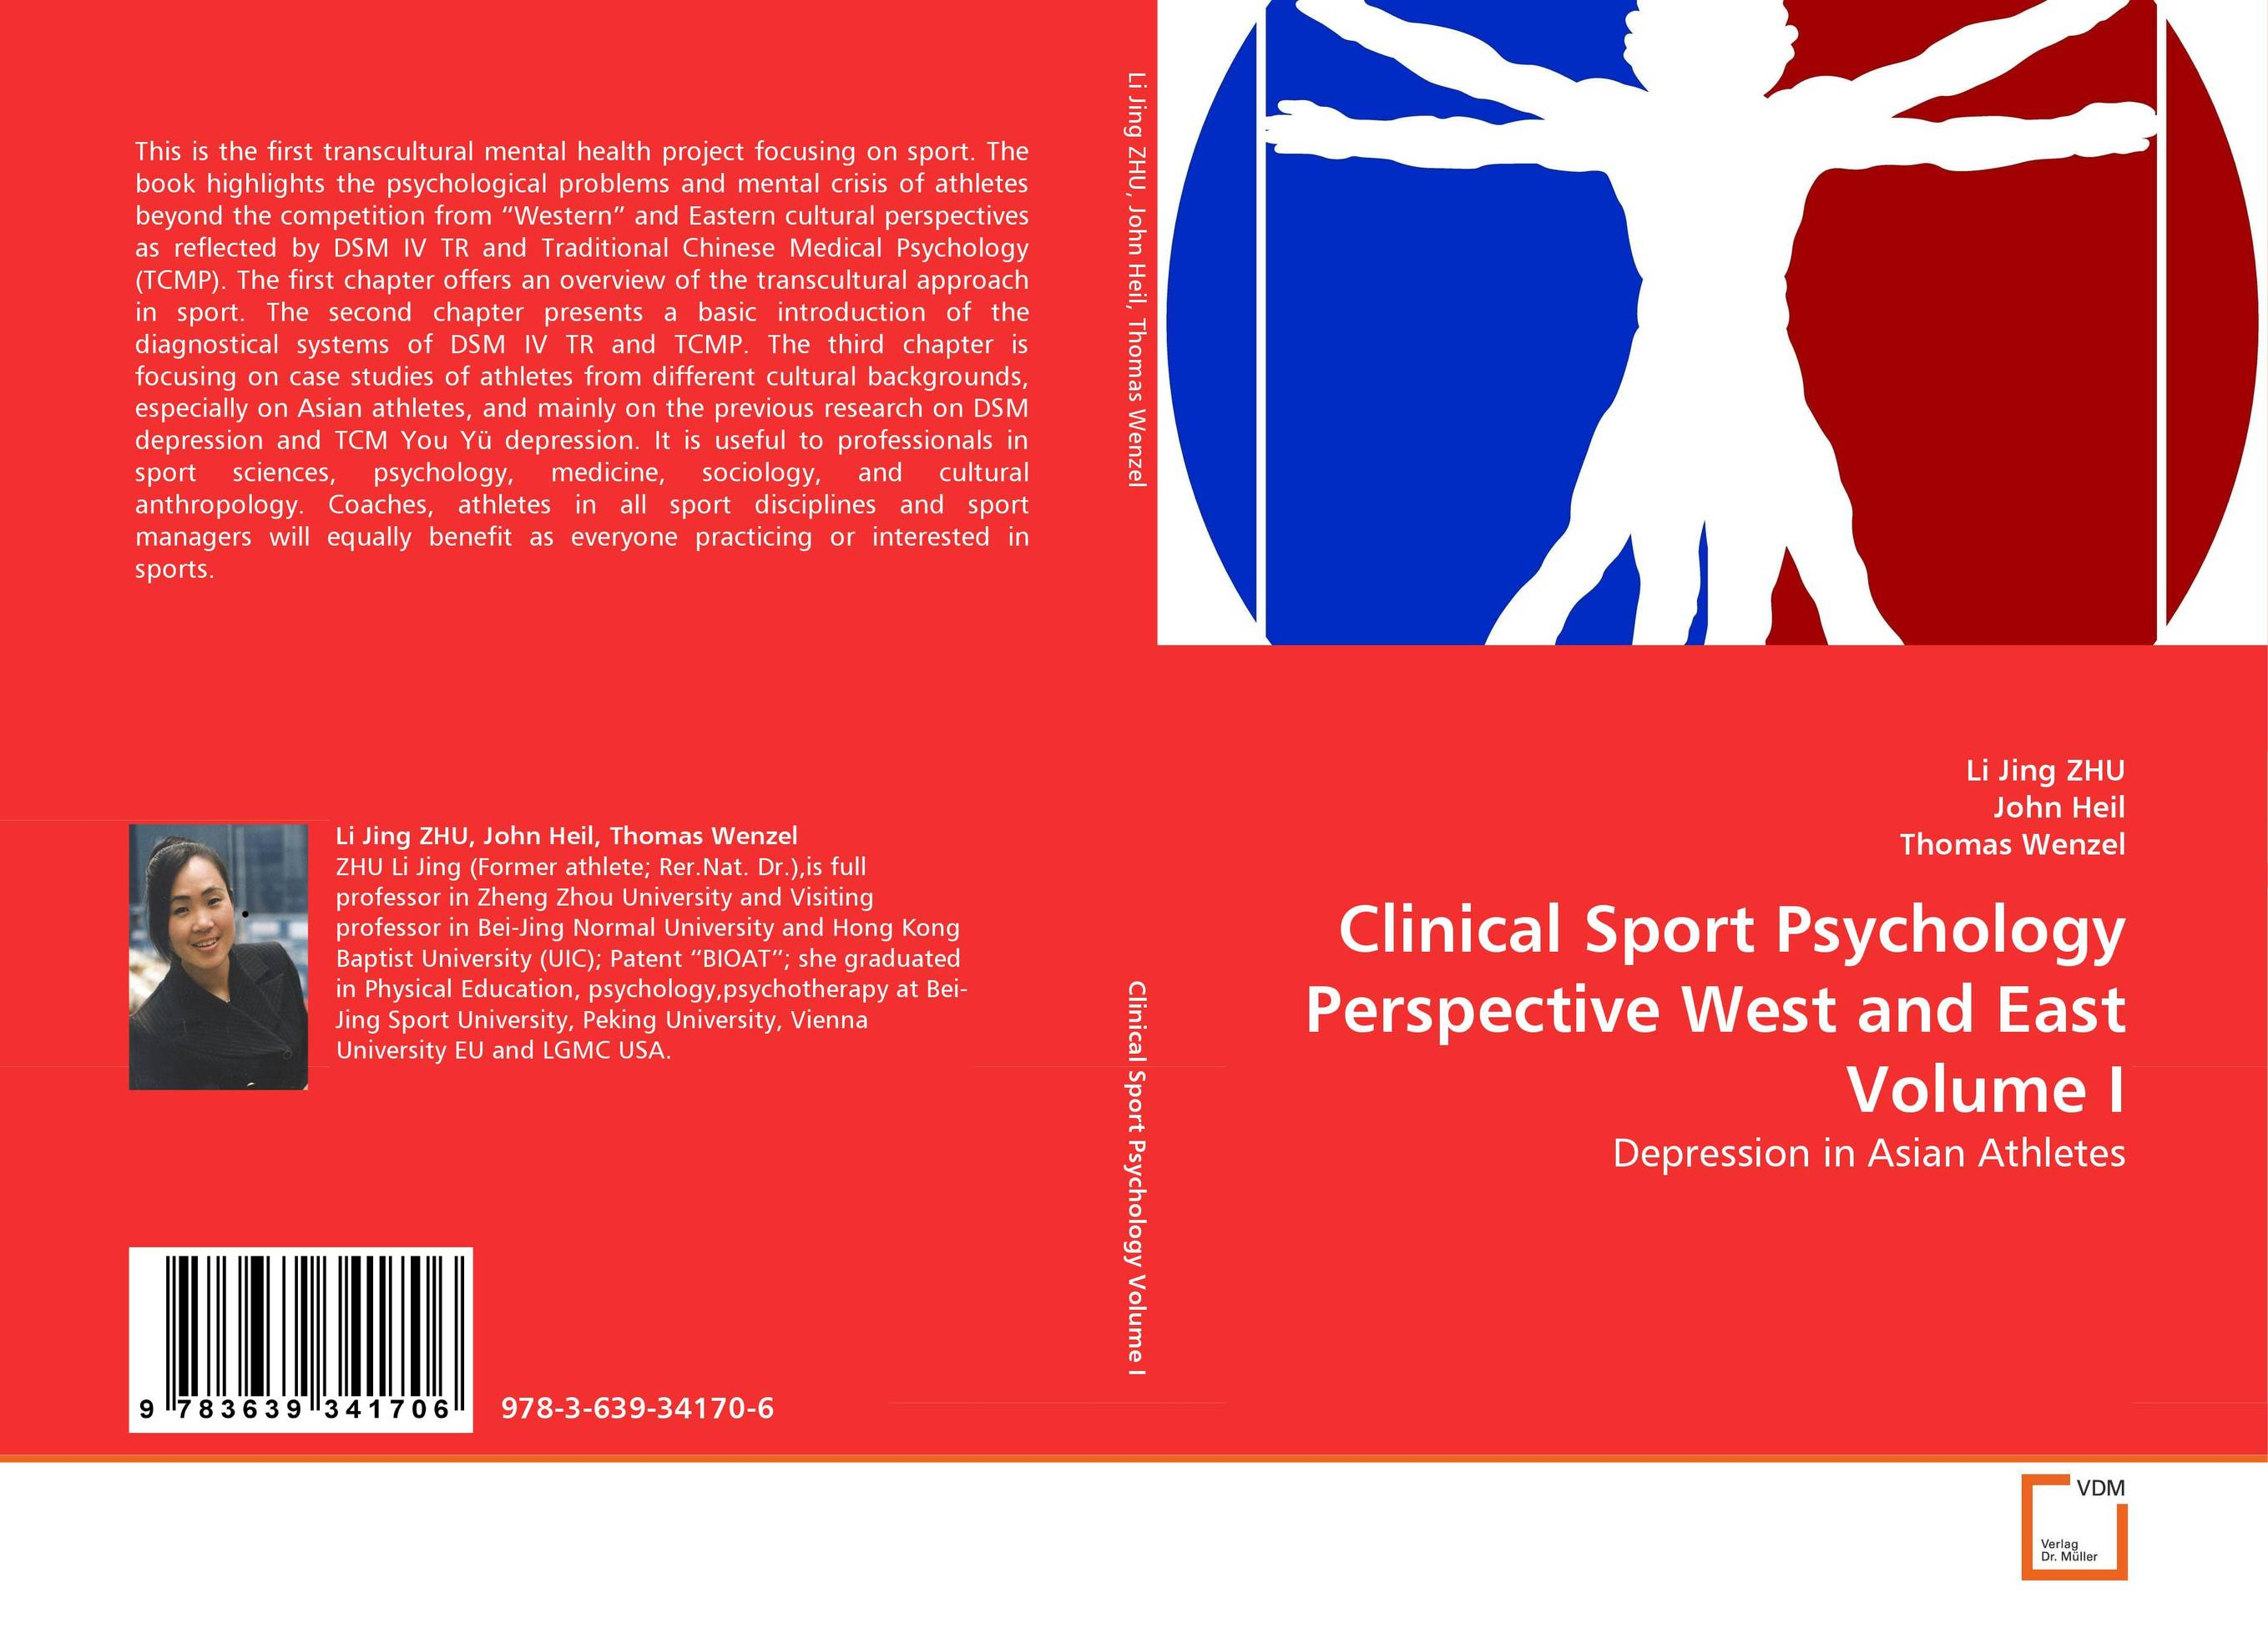 Clinical Sport Psychology Perspective West and East Volume I basic psychology 5e sg